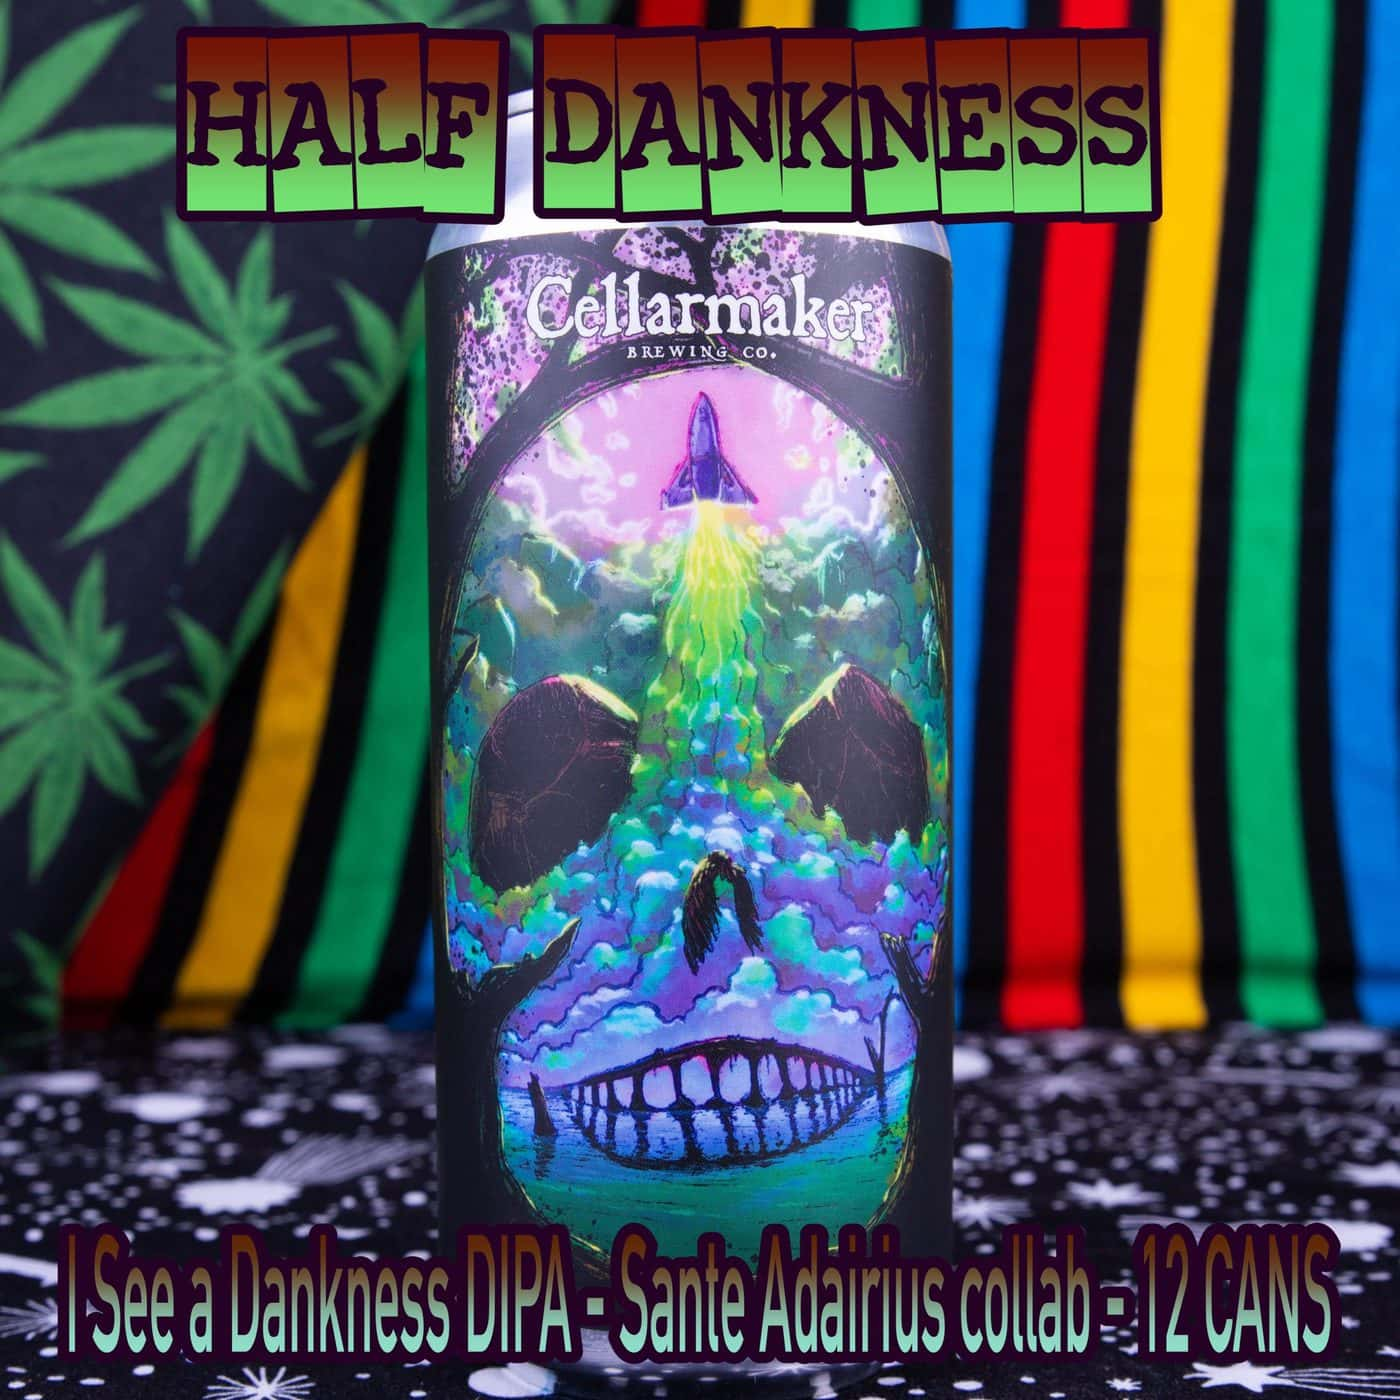 Half Case 12 CANS I See A Dankness DIPA – Sante Adairius Collab – Shipping Out Tuesday 4/13 For Next Day Delivery*